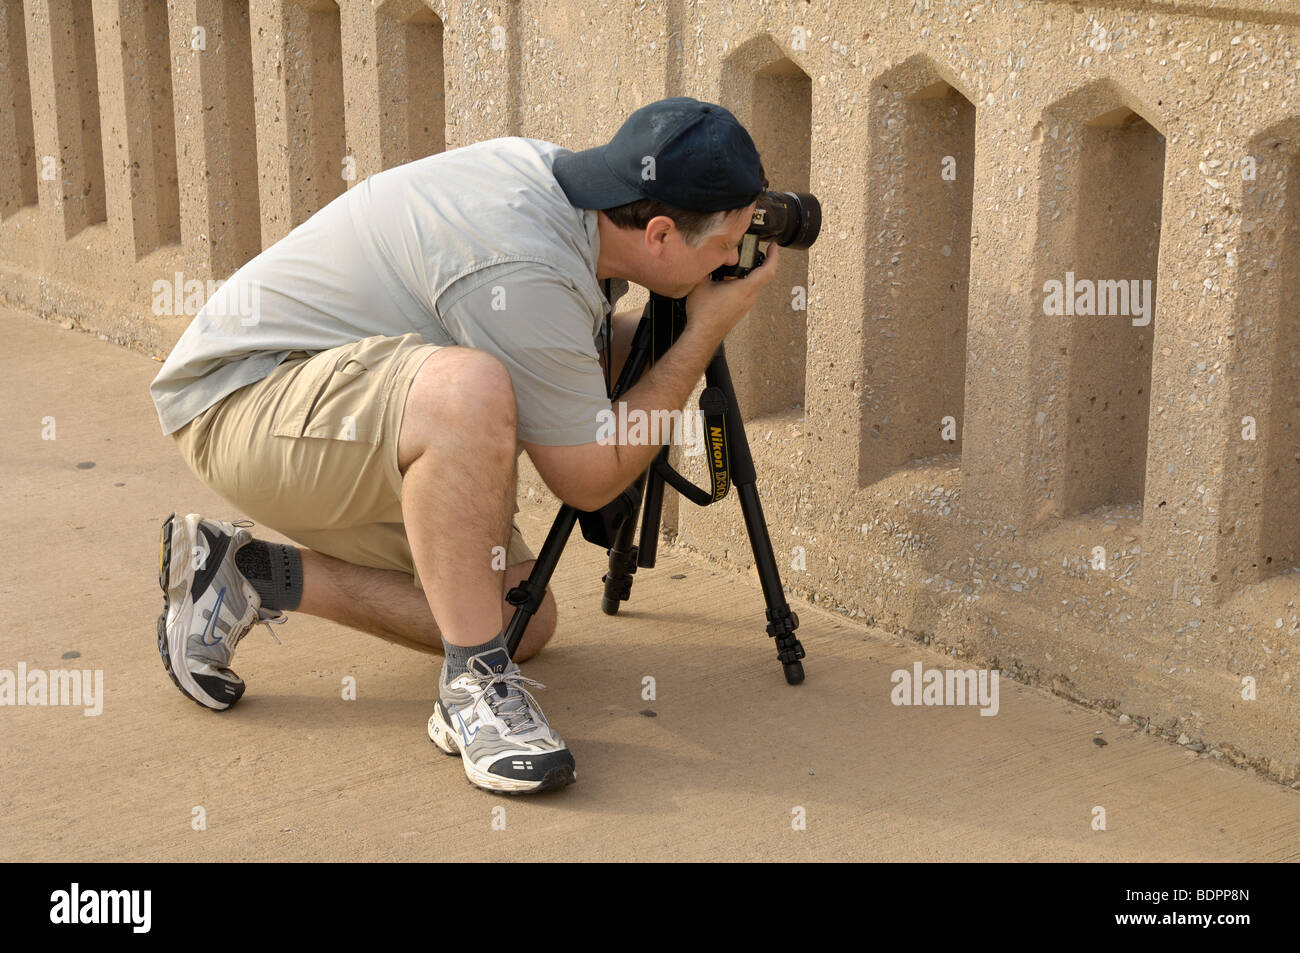 Professional photographer captures an interesting subject through a bridge rail.  Photo by Darrell Young. - Stock Image